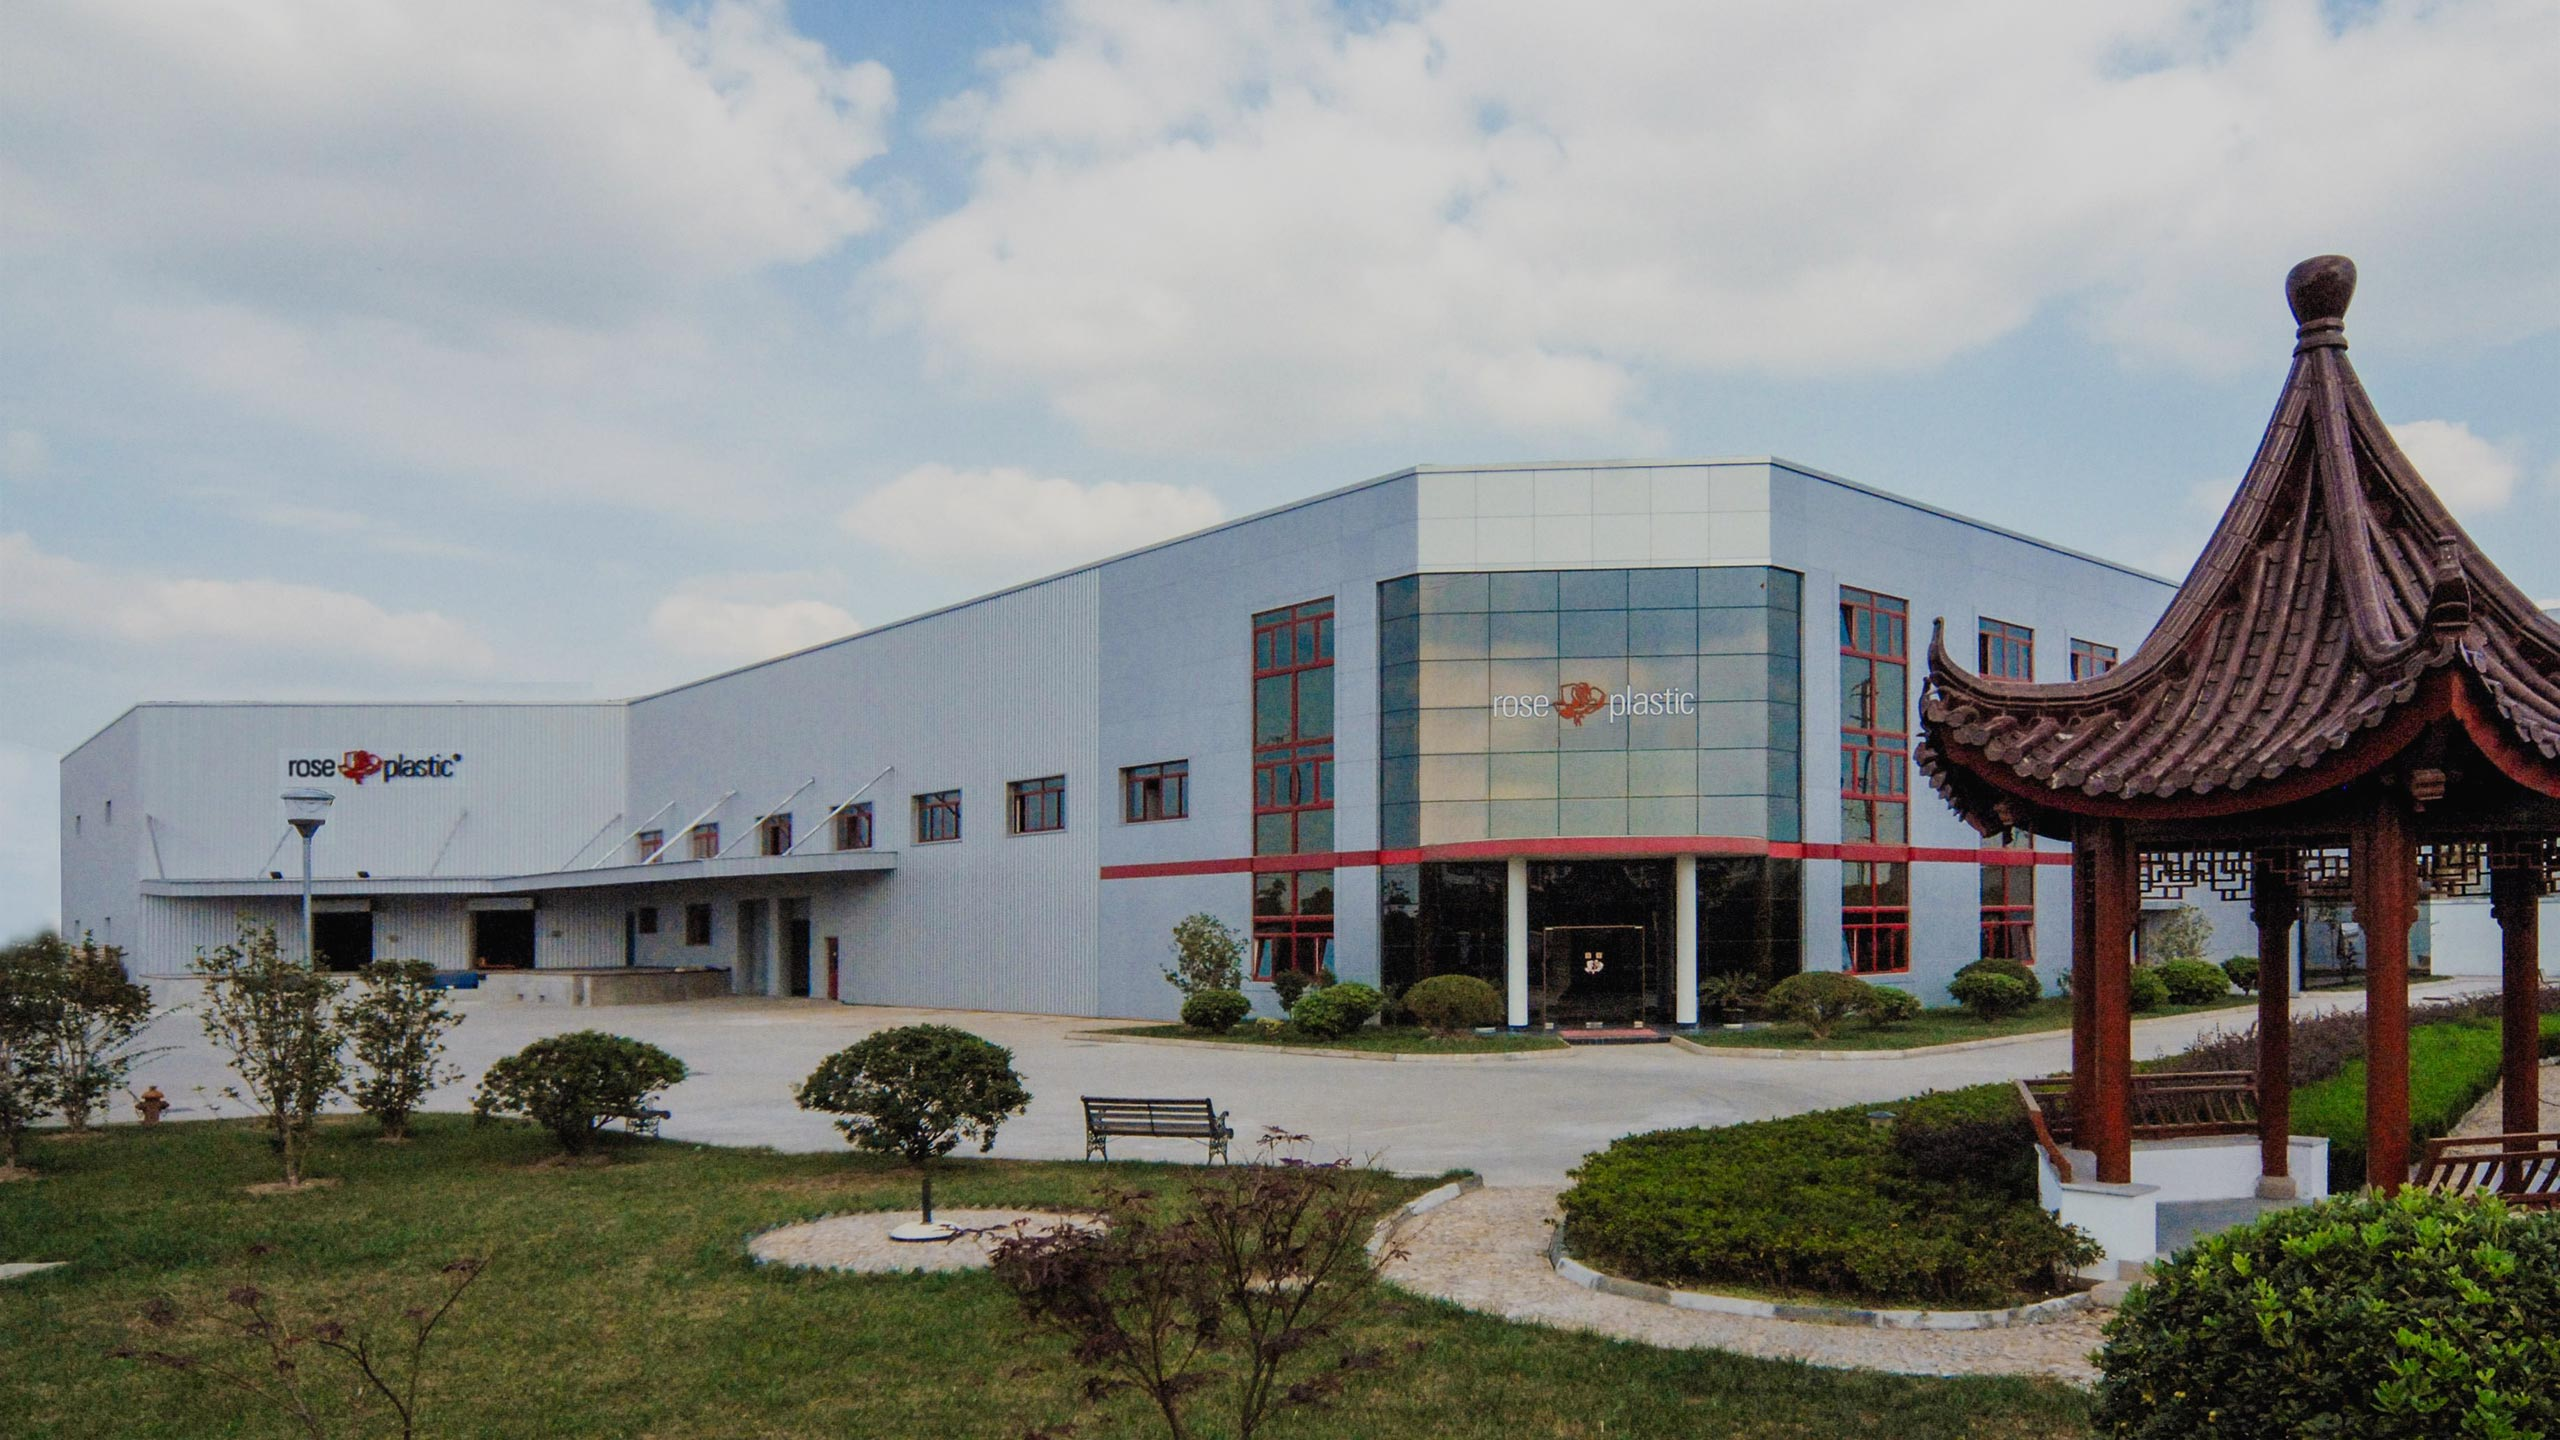 rose plastic Kunshan is located in Kunshan in Jiangsu Province, China